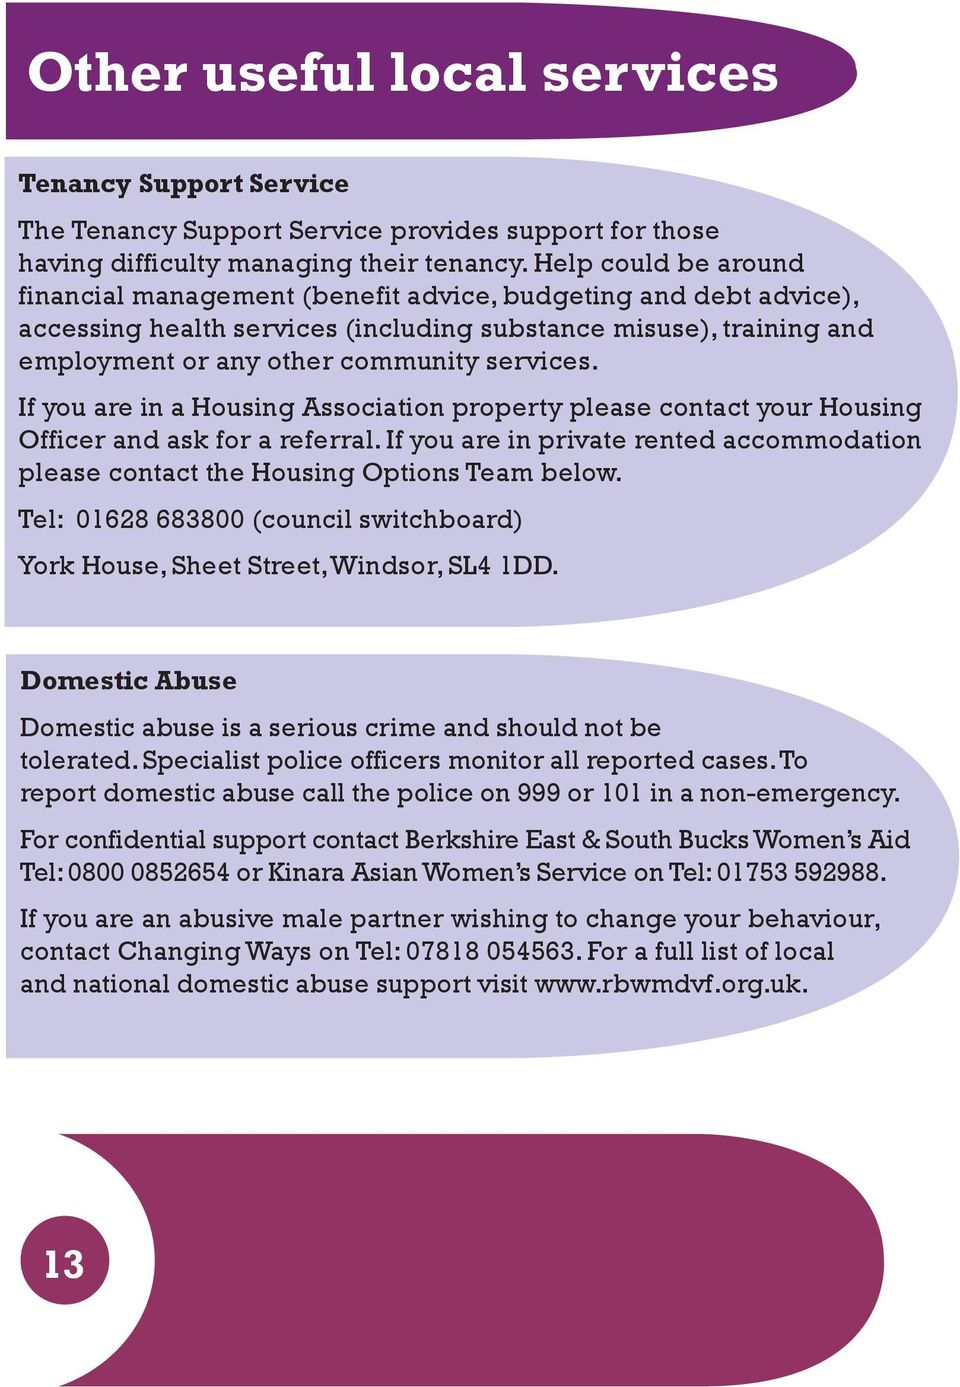 If you are in a Housing Association property please contact your Housing Officer and ask for a referral. If you are in private rented accommodation please contact the Housing Options Team below.